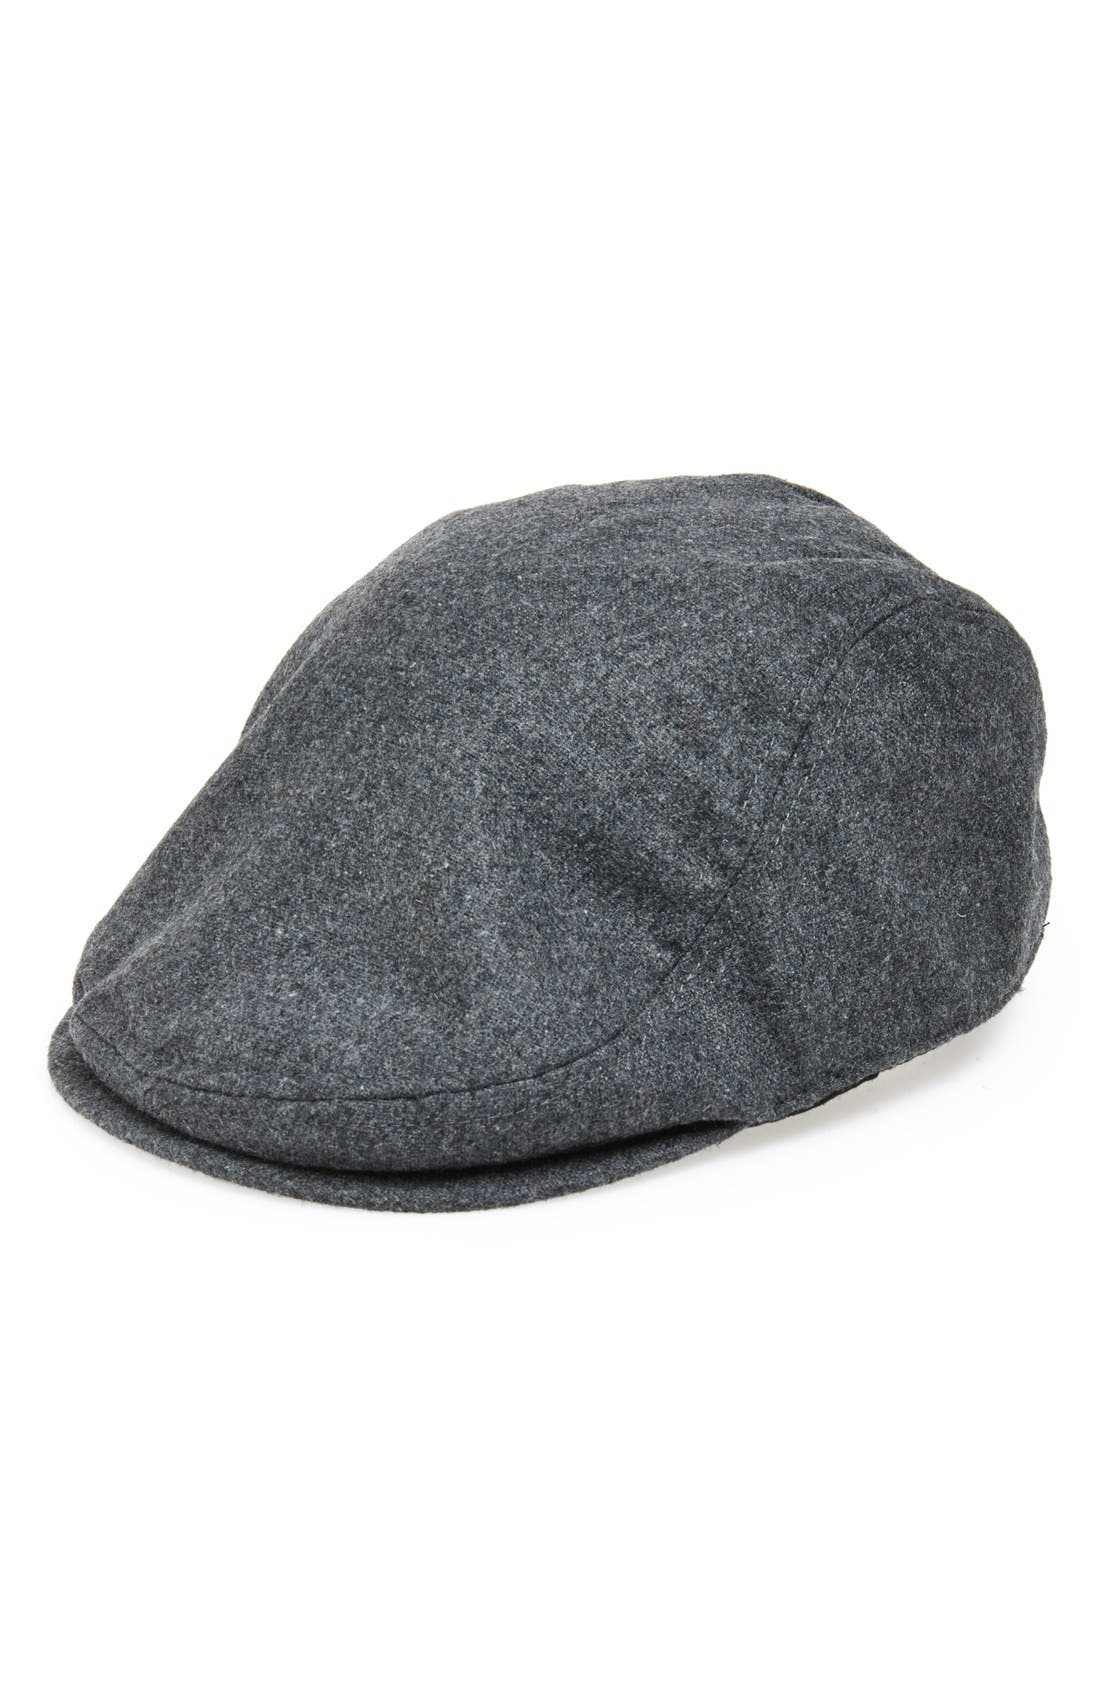 GOORIN BROTHERS Glory Hats by Goorin 'Mikey' Driving